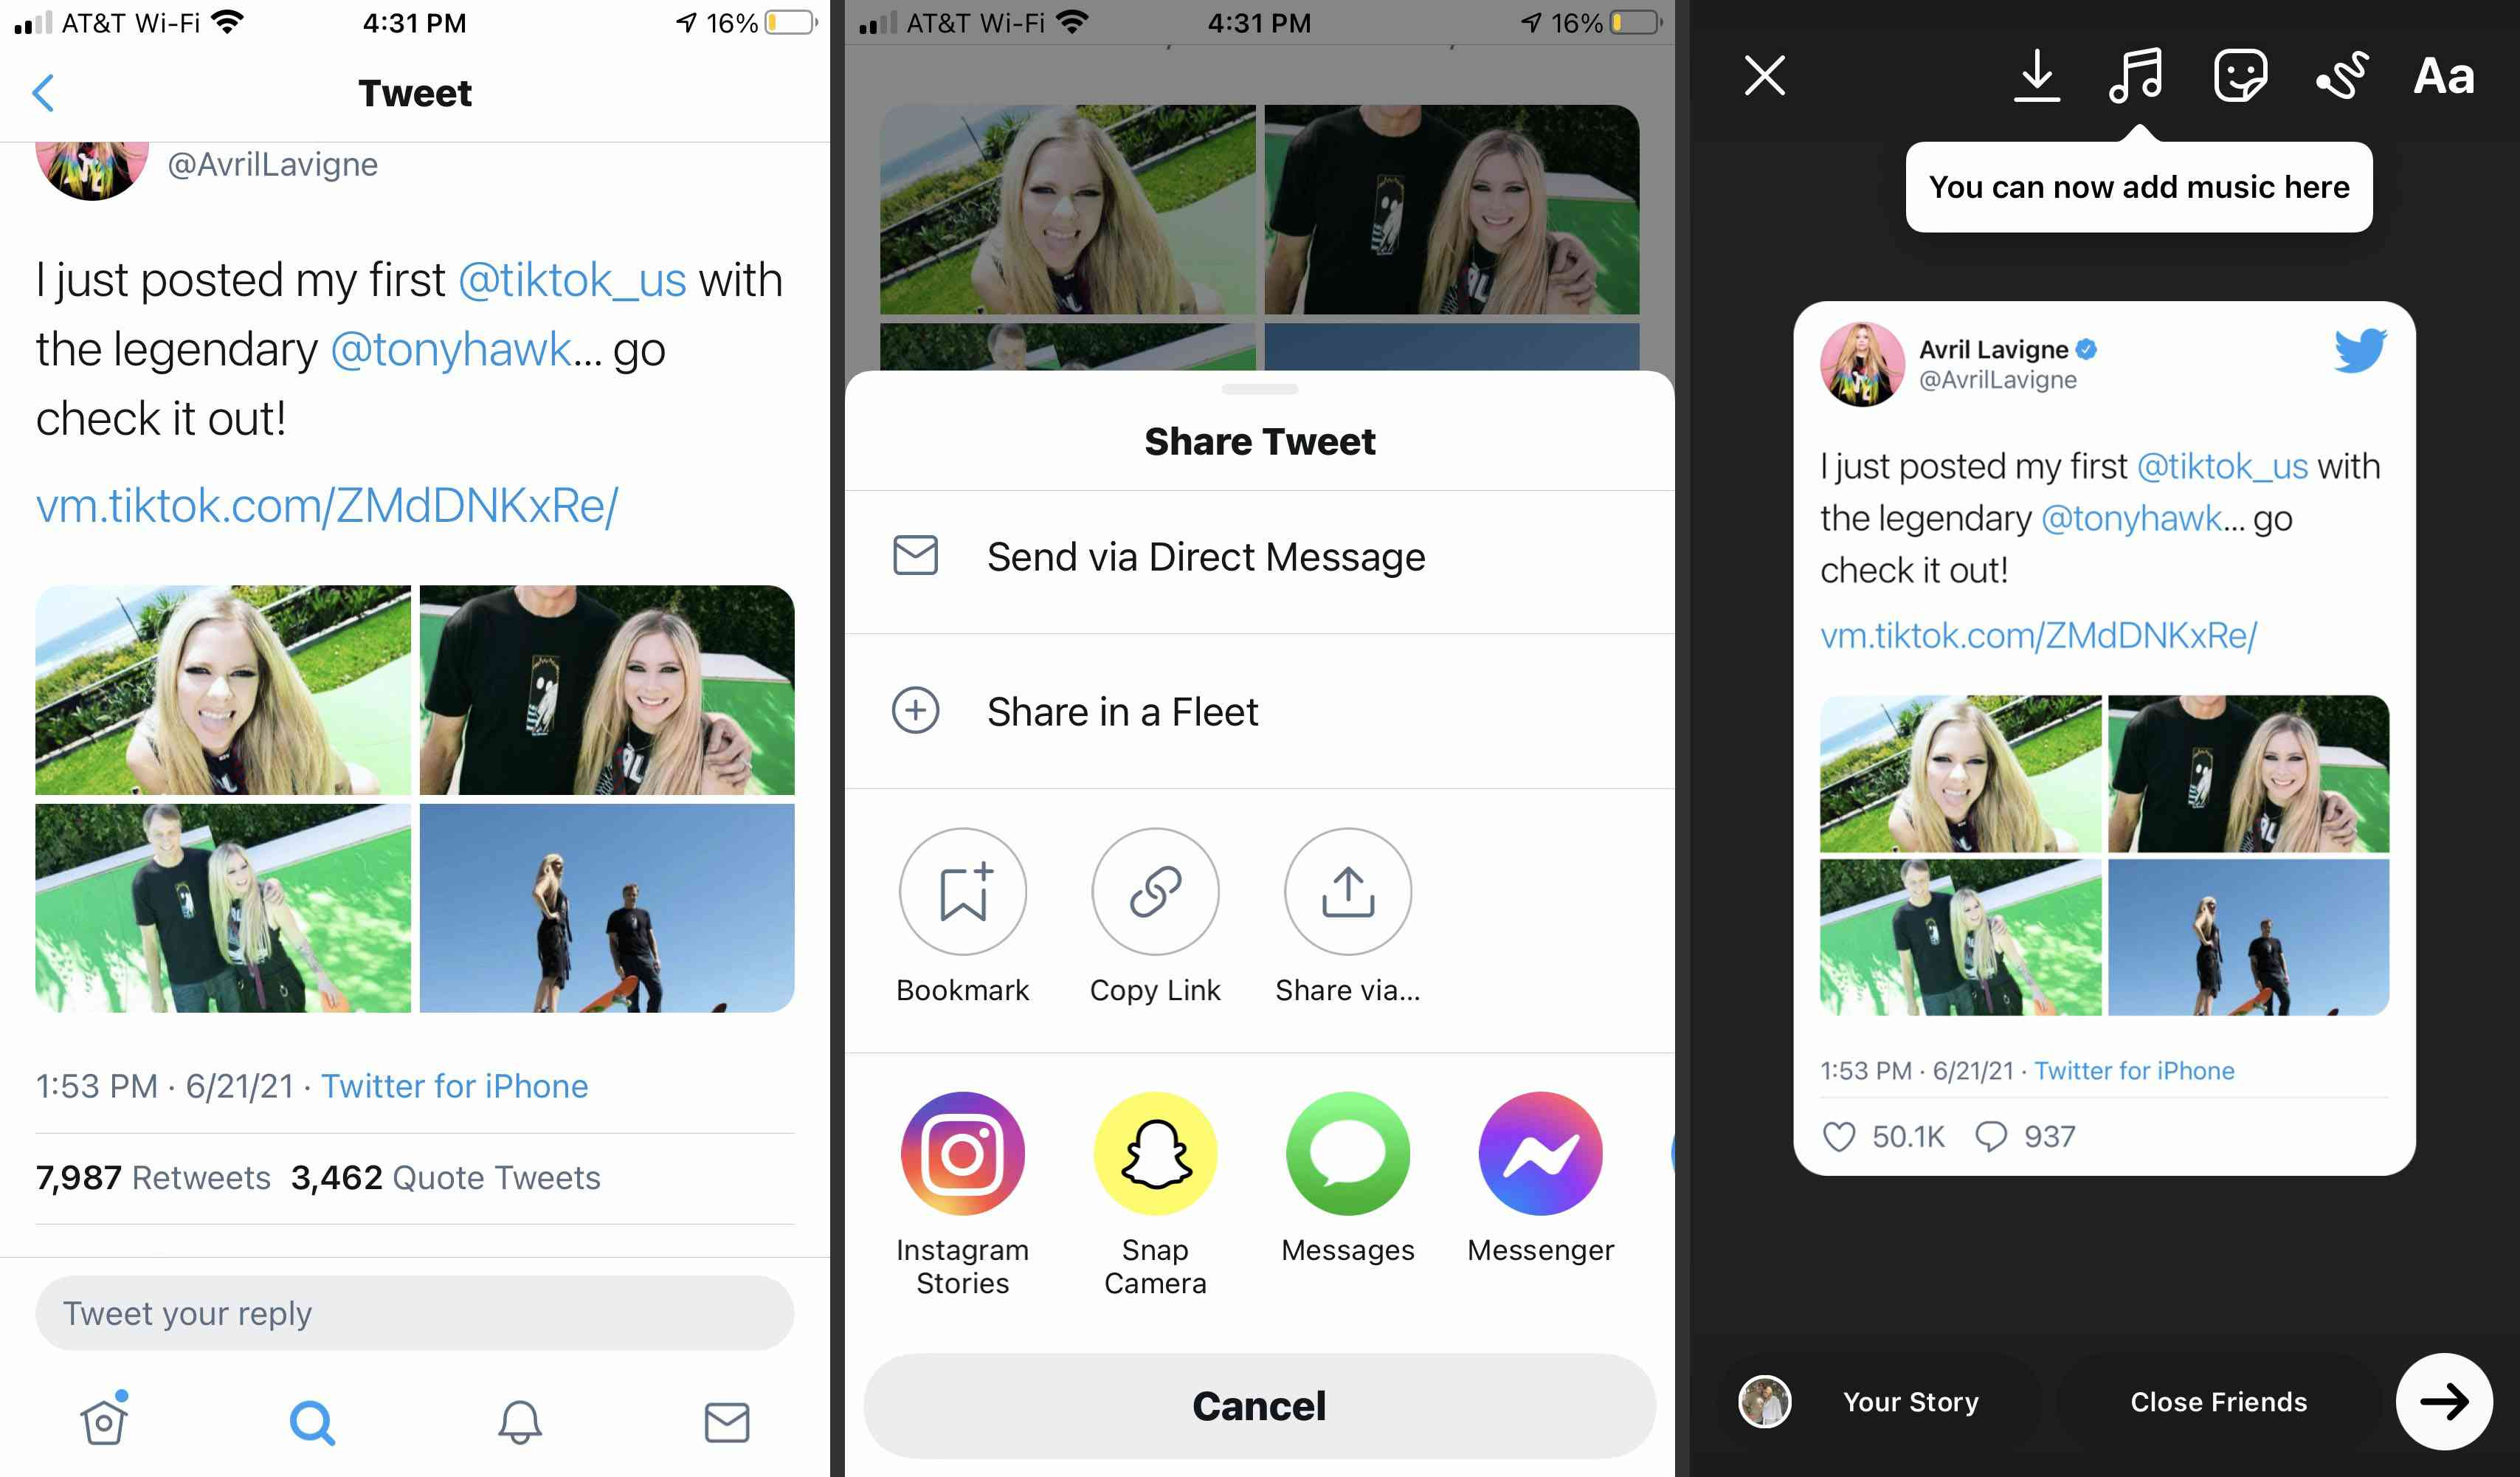 Twitter tweet with the Share to Instagram Stories feature shown